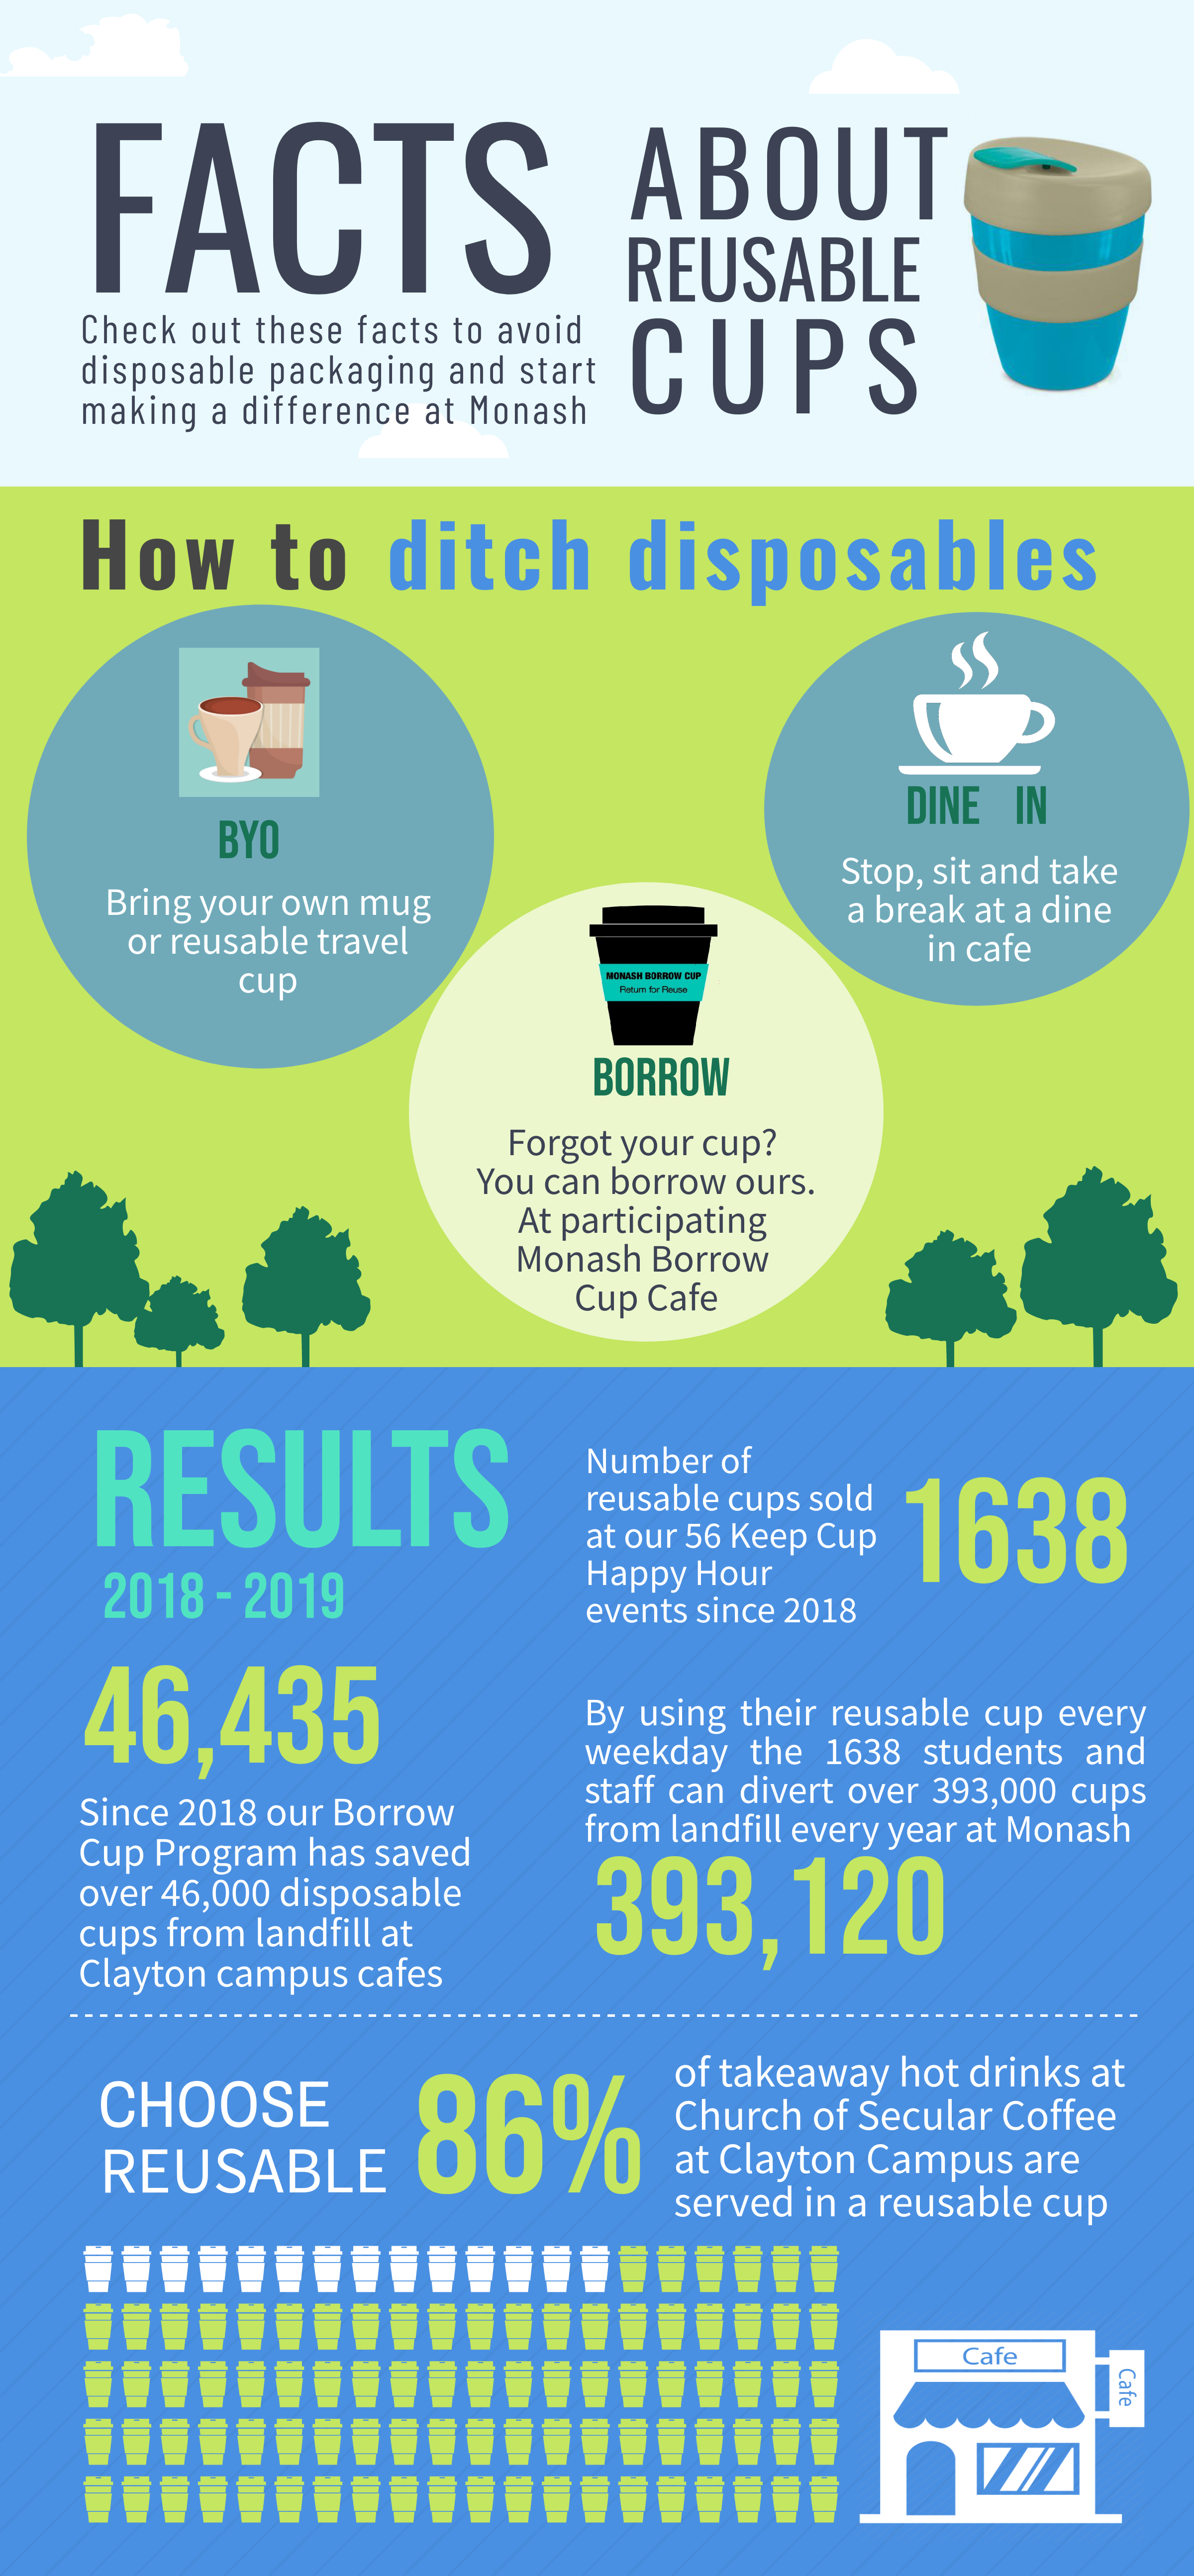 Facts about reuse-able cup